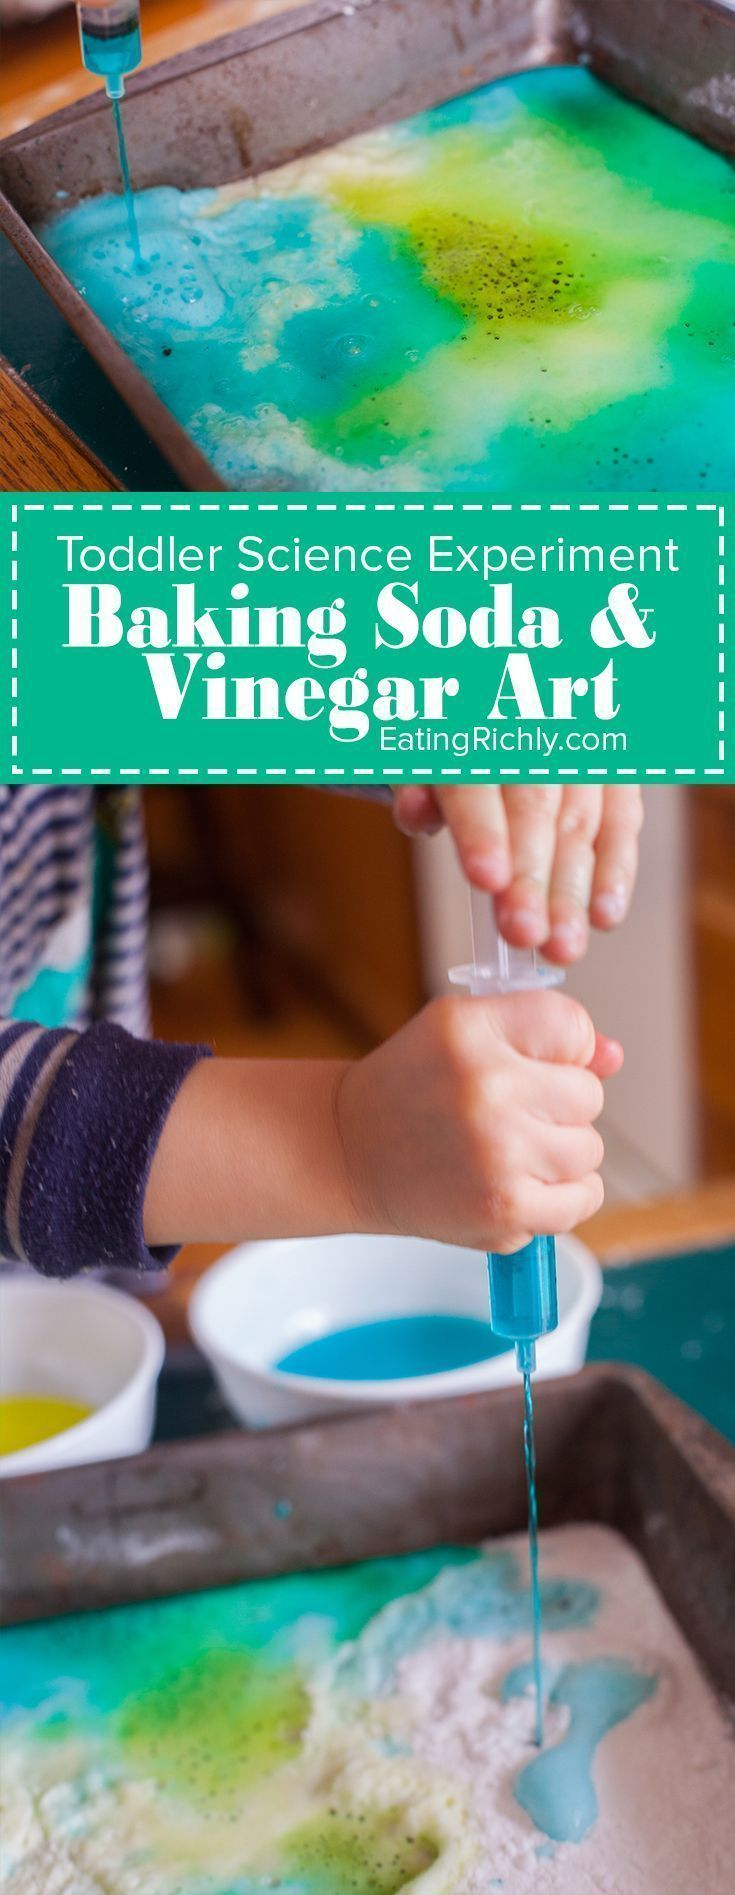 baking soda and vinegar lab essay The baking soda and vinegar volcano is a chemistry project you can use to  simulate a real volcanic eruption, as an example of an acid-base reaction, or can  do.